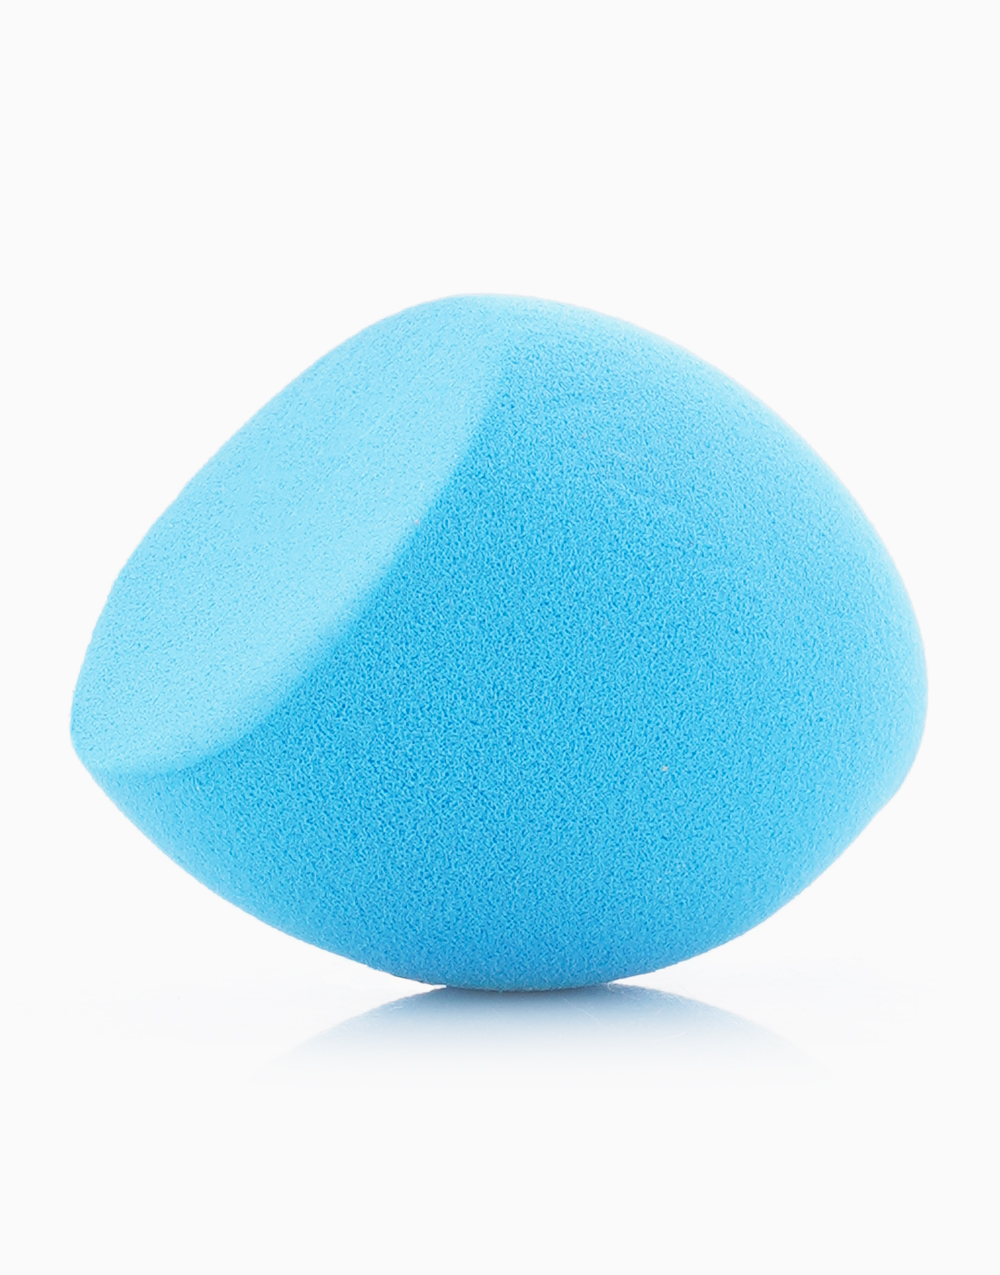 Mini Miracle Edge Sponge by PRO STUDIO Beauty Exclusives | Blue